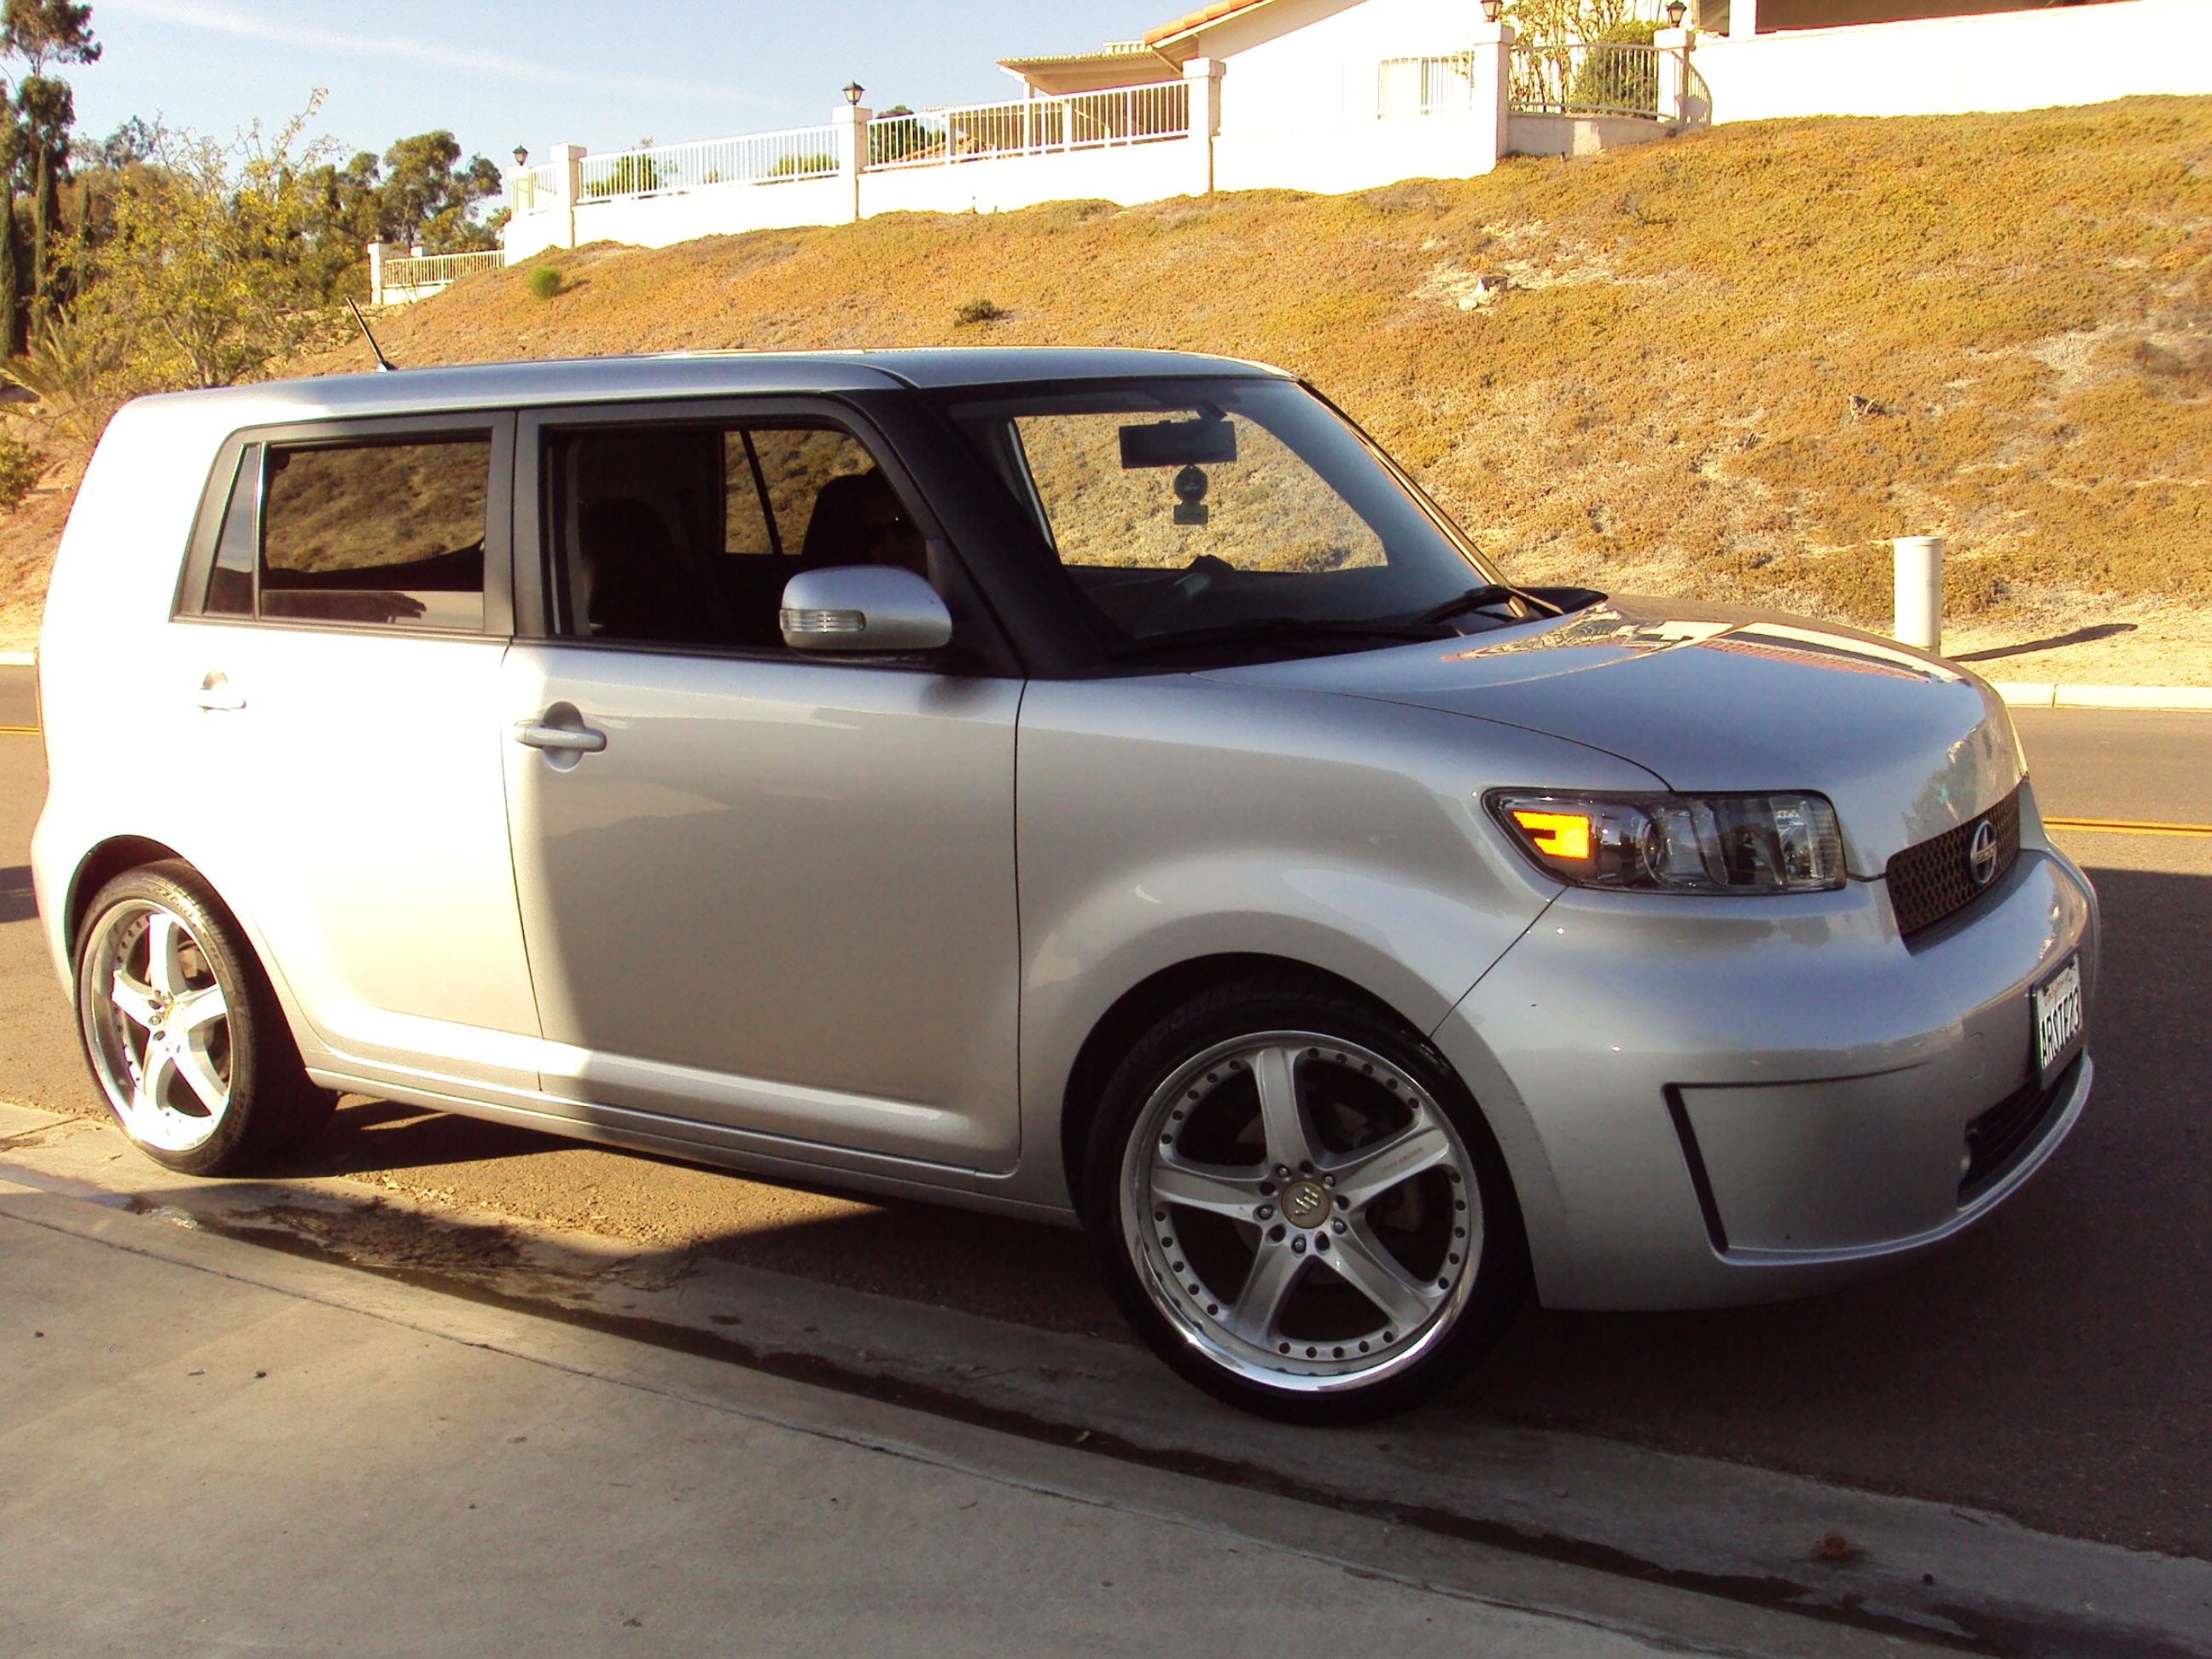 rod j 2008 scion xb specs photos modification info at cardomain. Black Bedroom Furniture Sets. Home Design Ideas